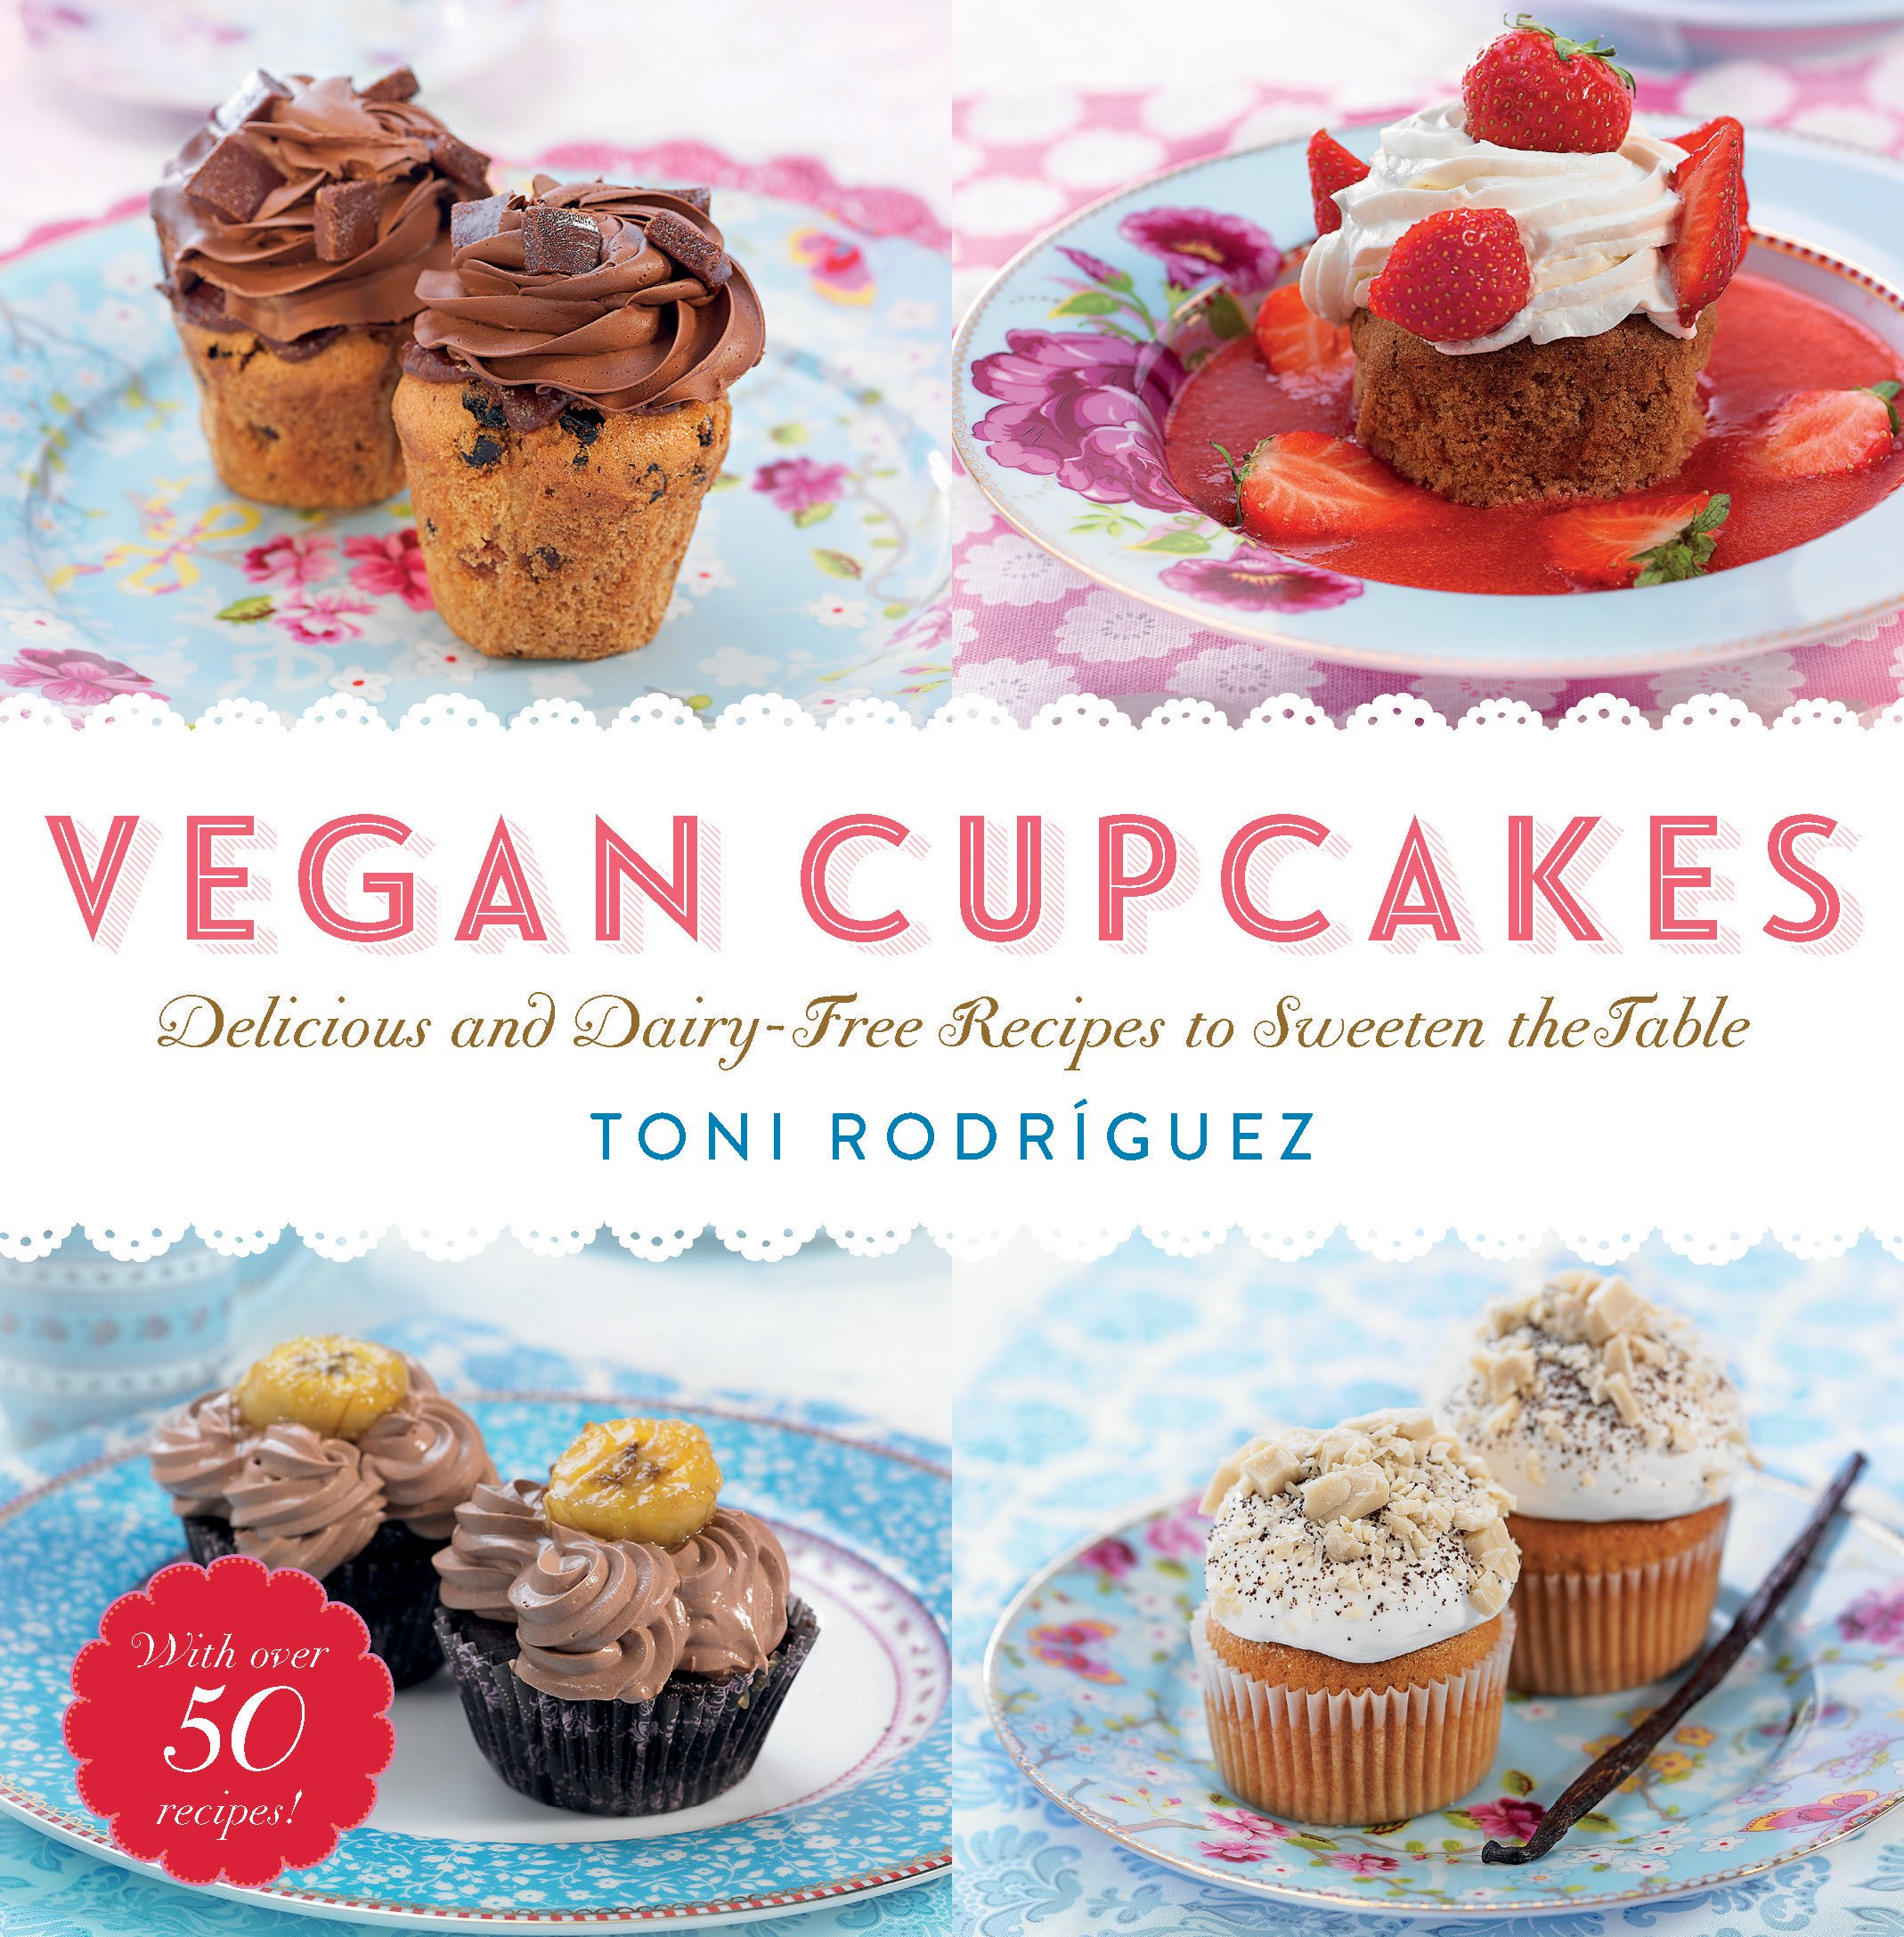 Vegan Cupcakes Delicious Dairy Free Recipes product image